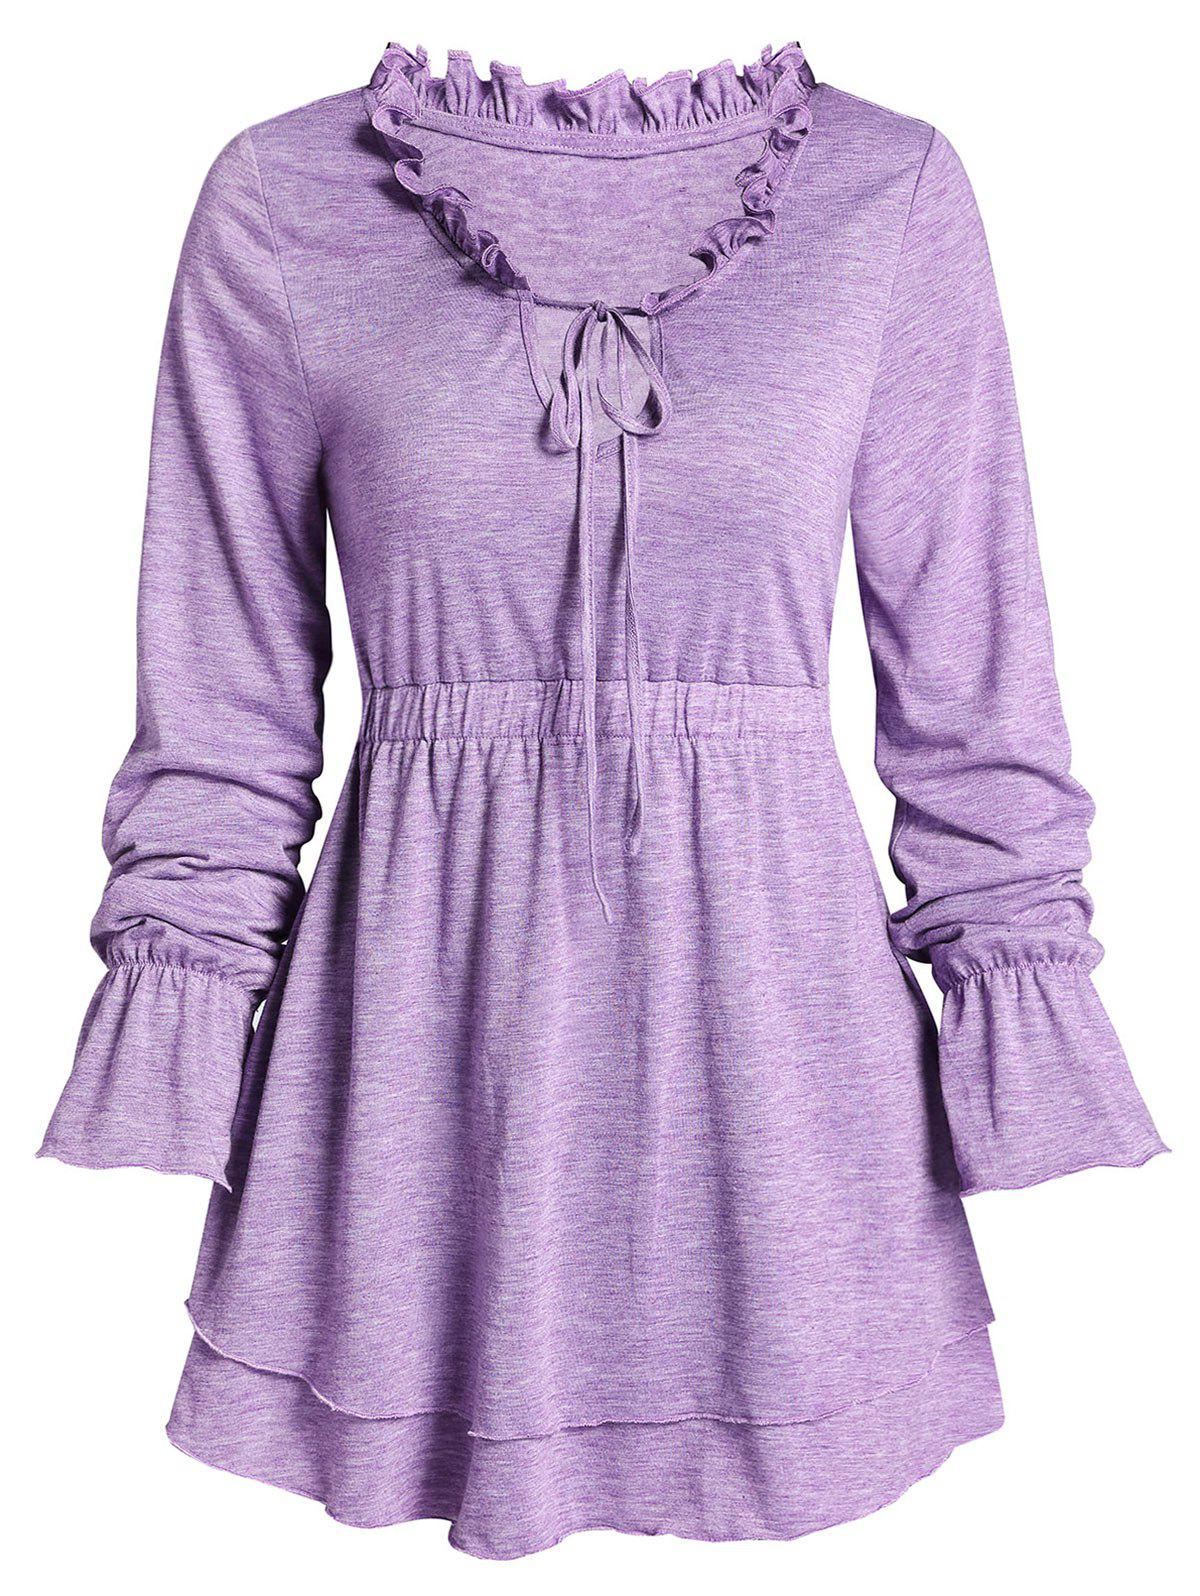 Space Dye Print Poet Sleeve Ruffle Layered T-shirt - VIOLET 3XL